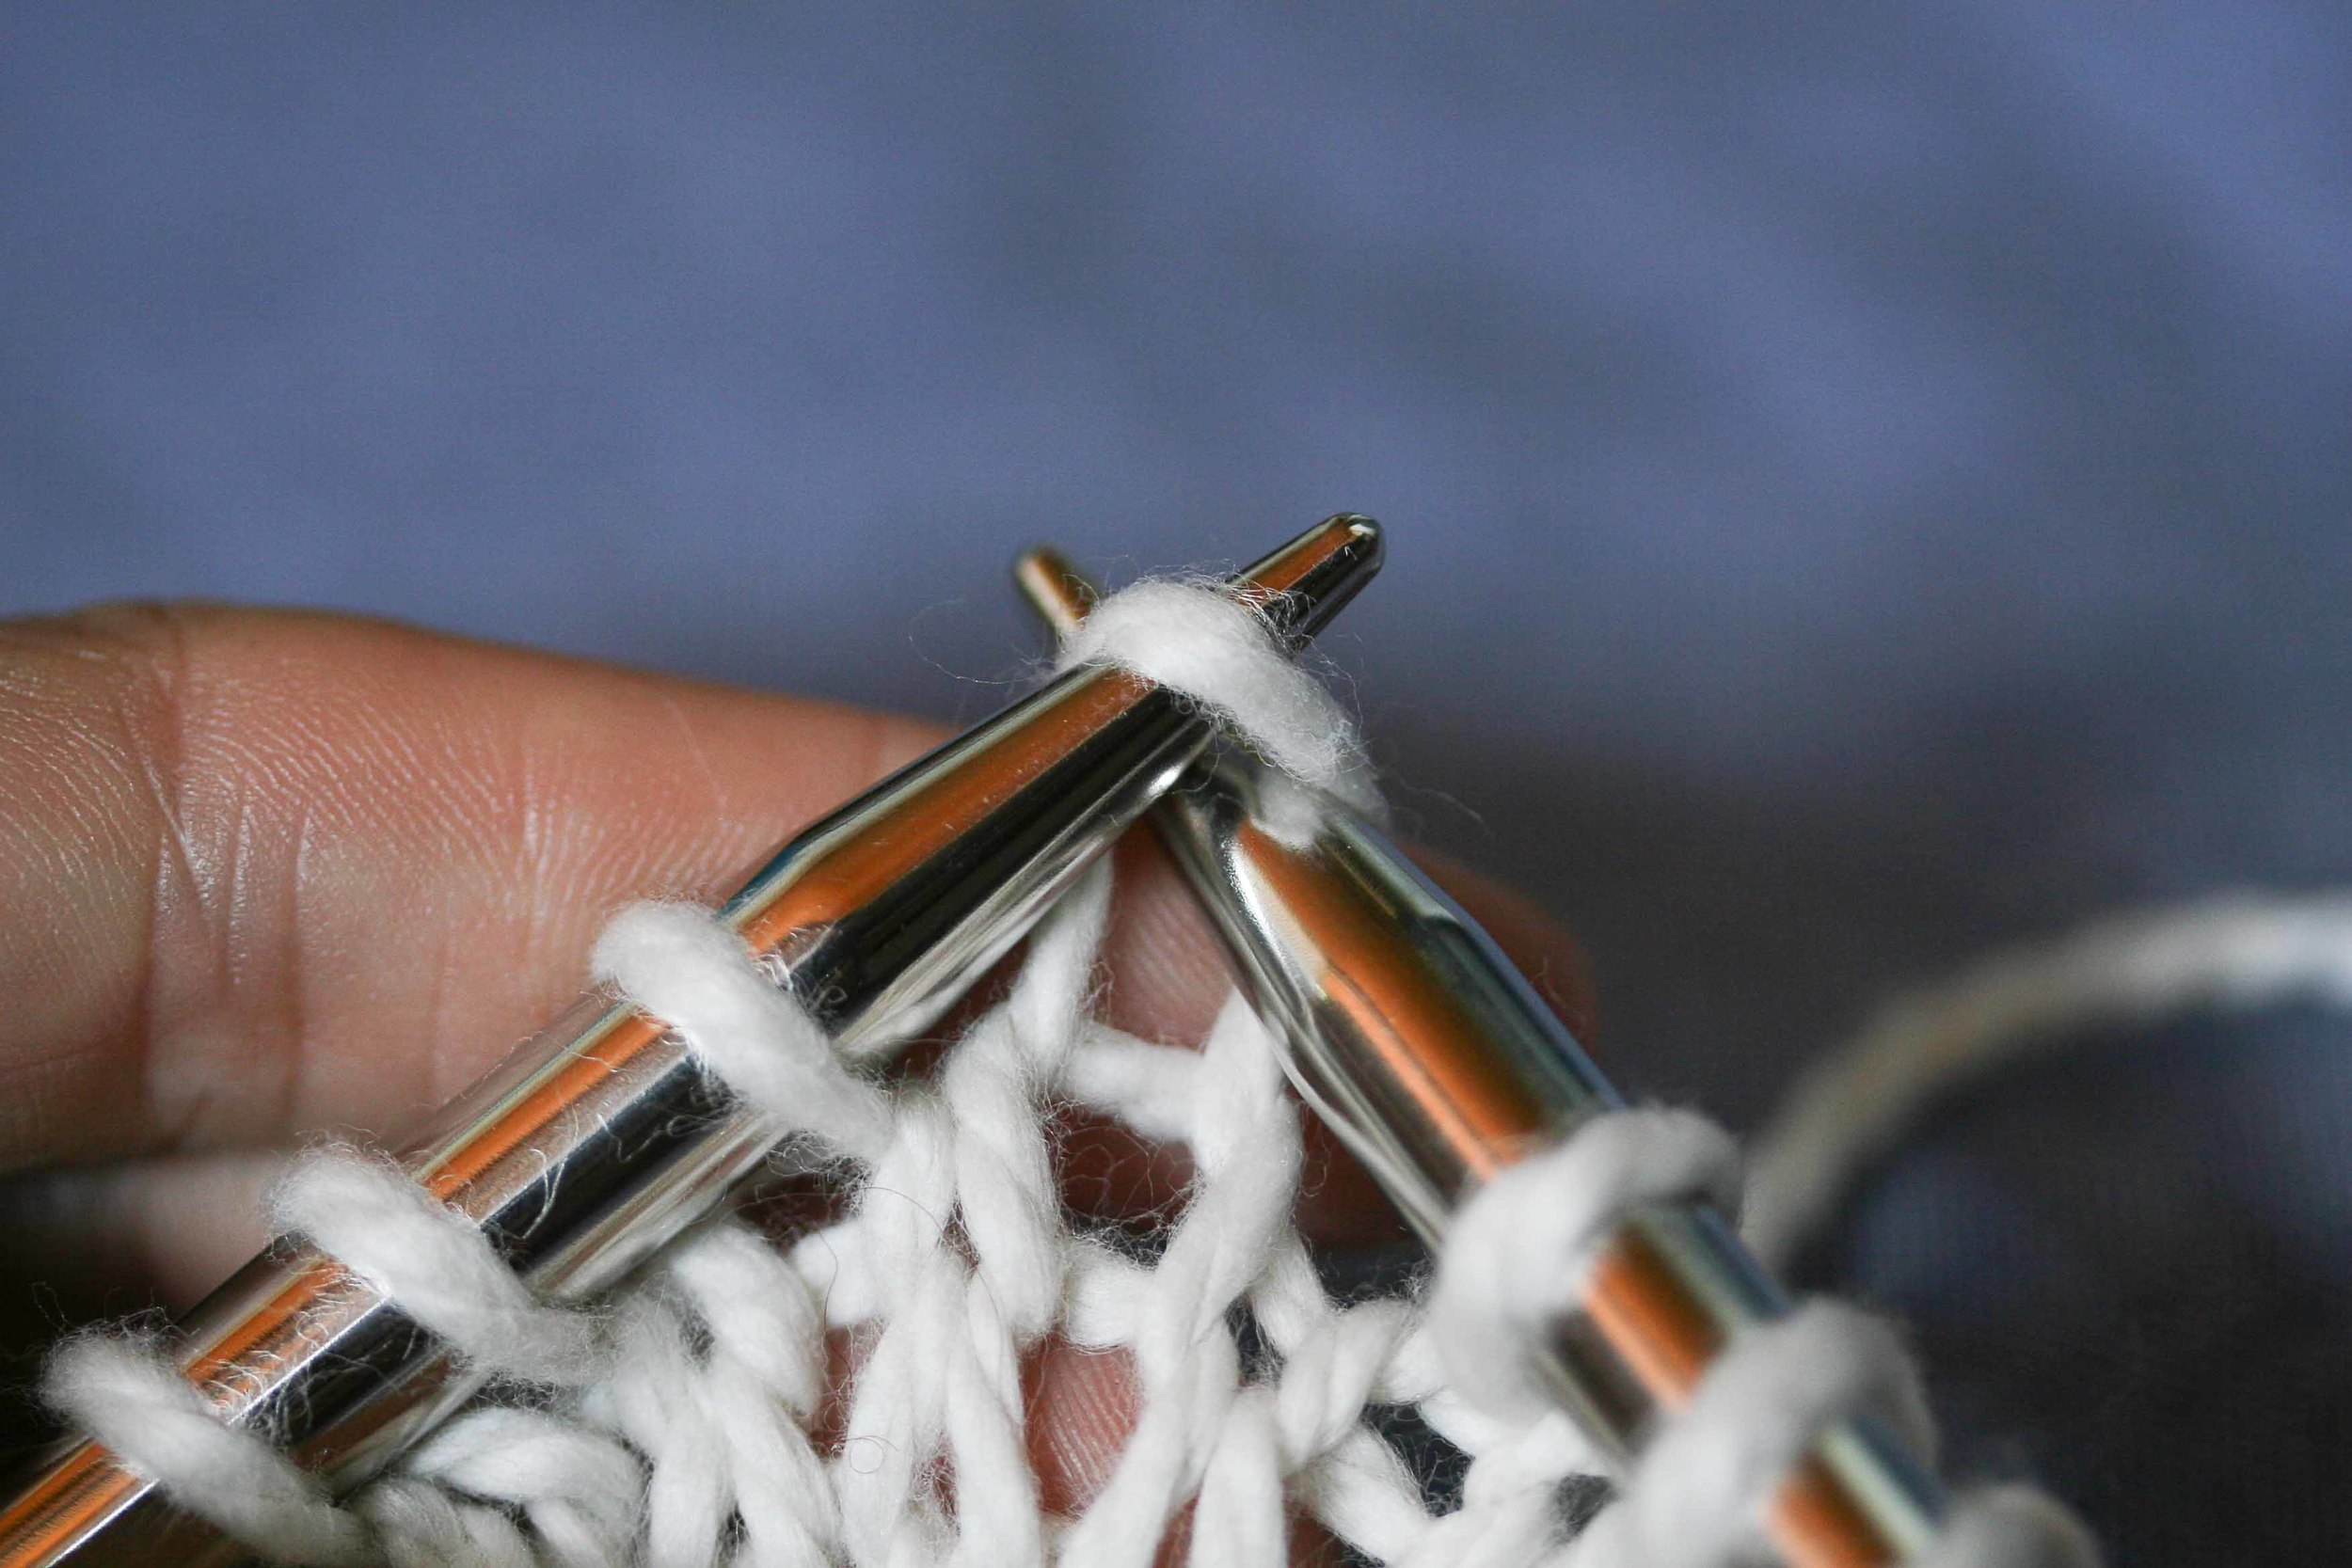 The right hand side of the stitch is on the front of the needle.